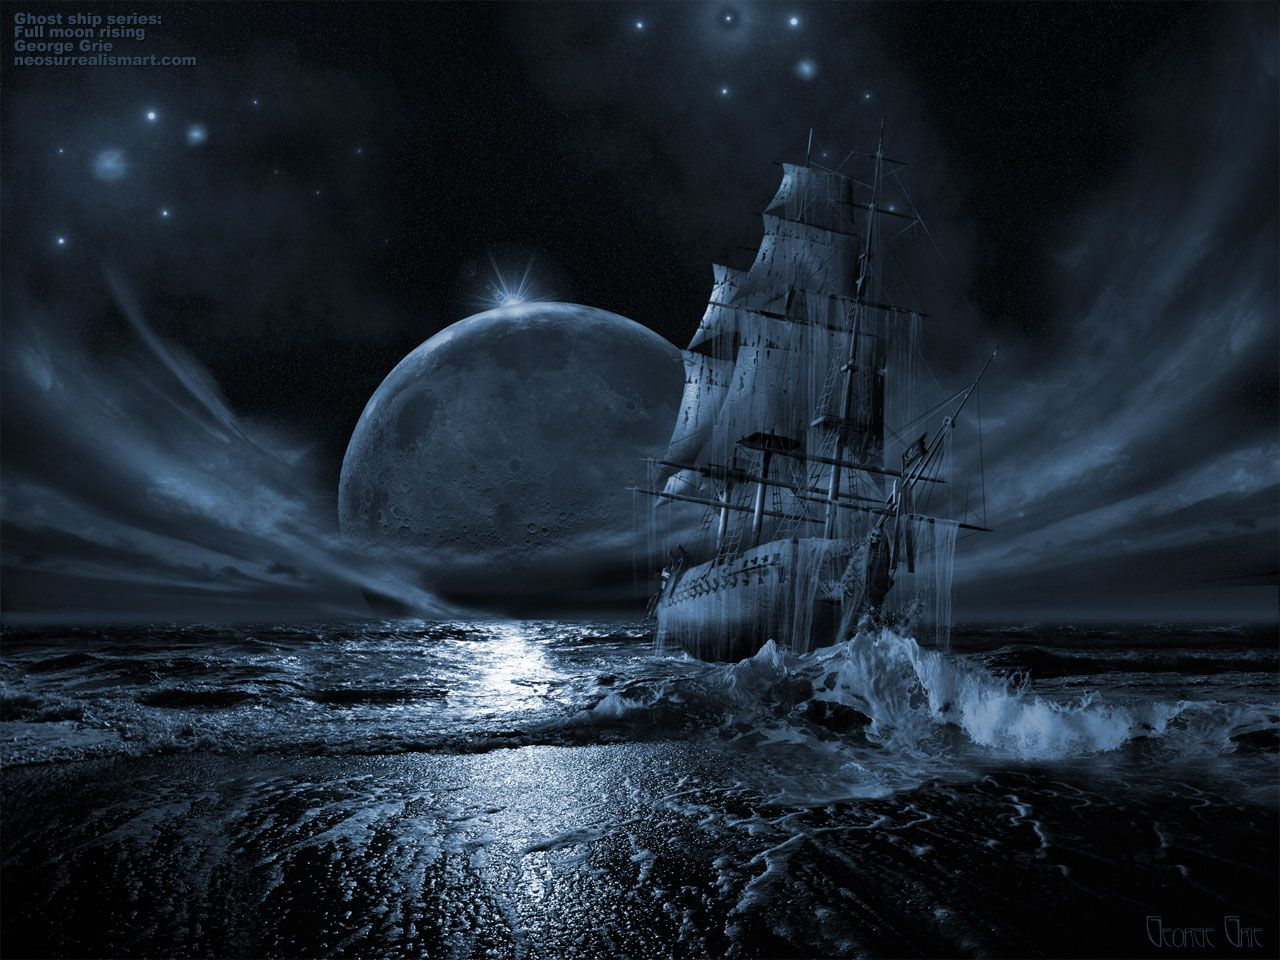 ghost pirate ship photos ghost ship poster image